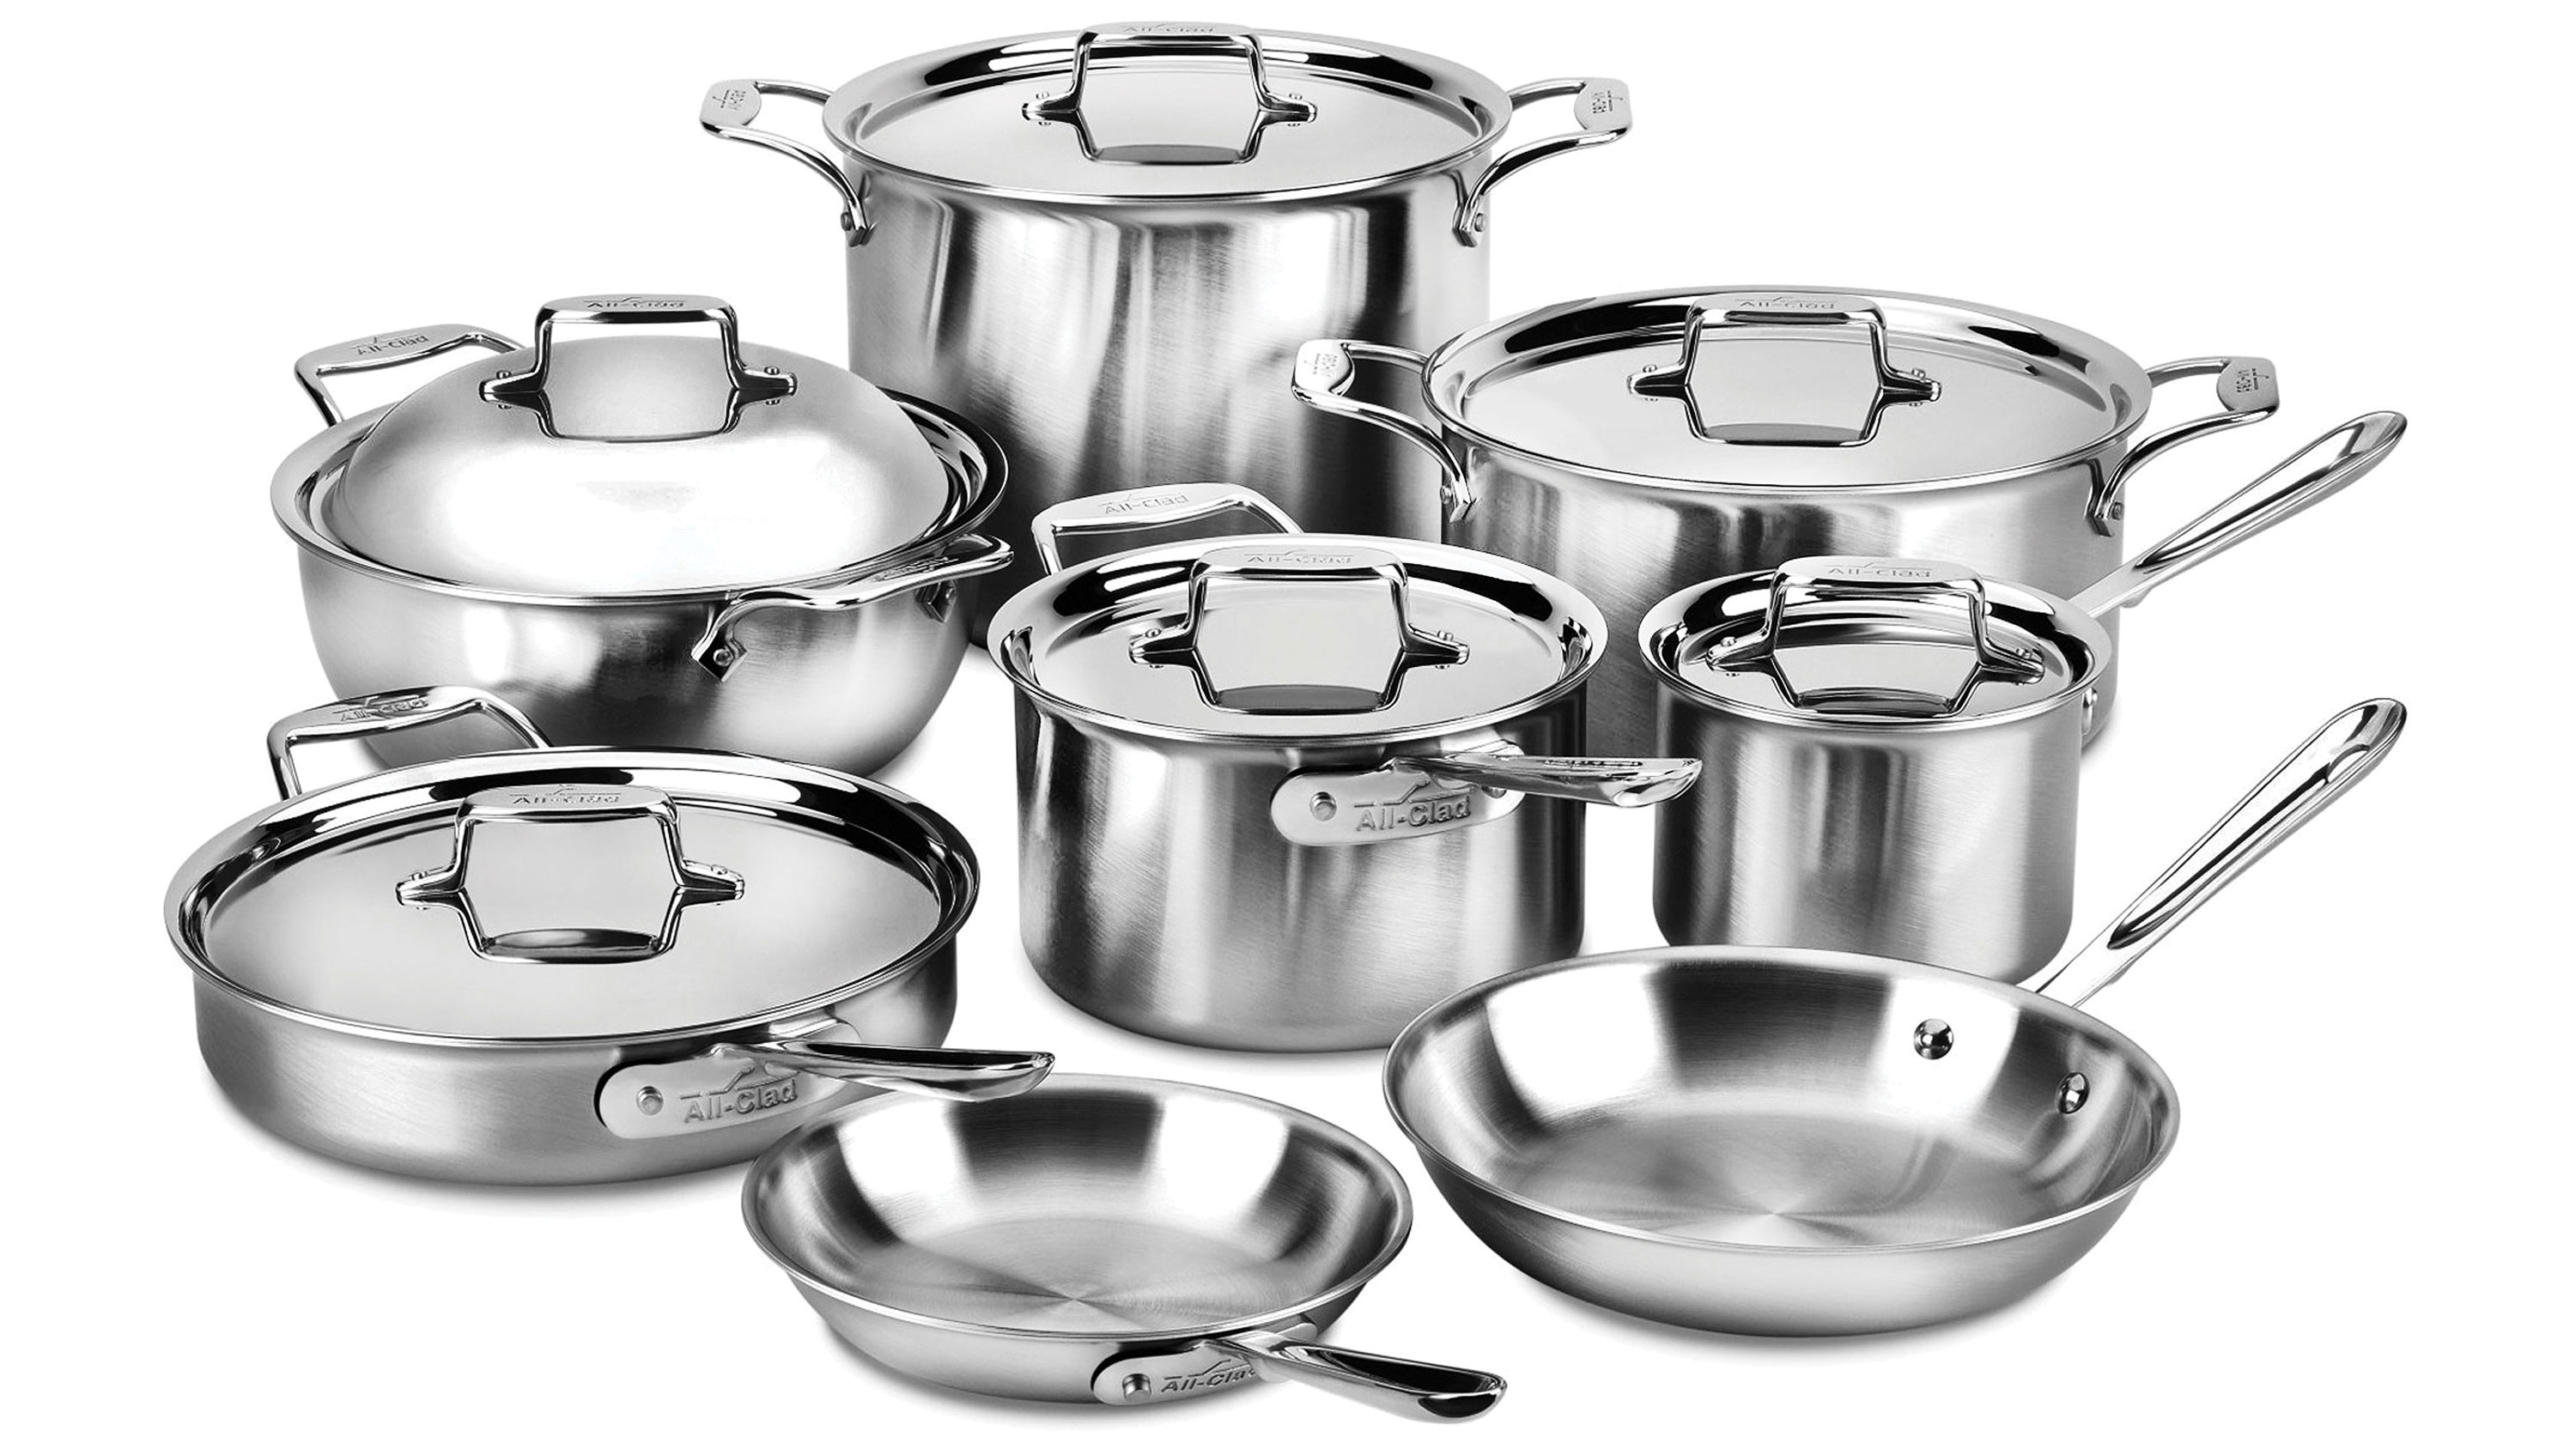 10 Quart Ceramic Pot Tramontina 8 Quart Stainless Steel